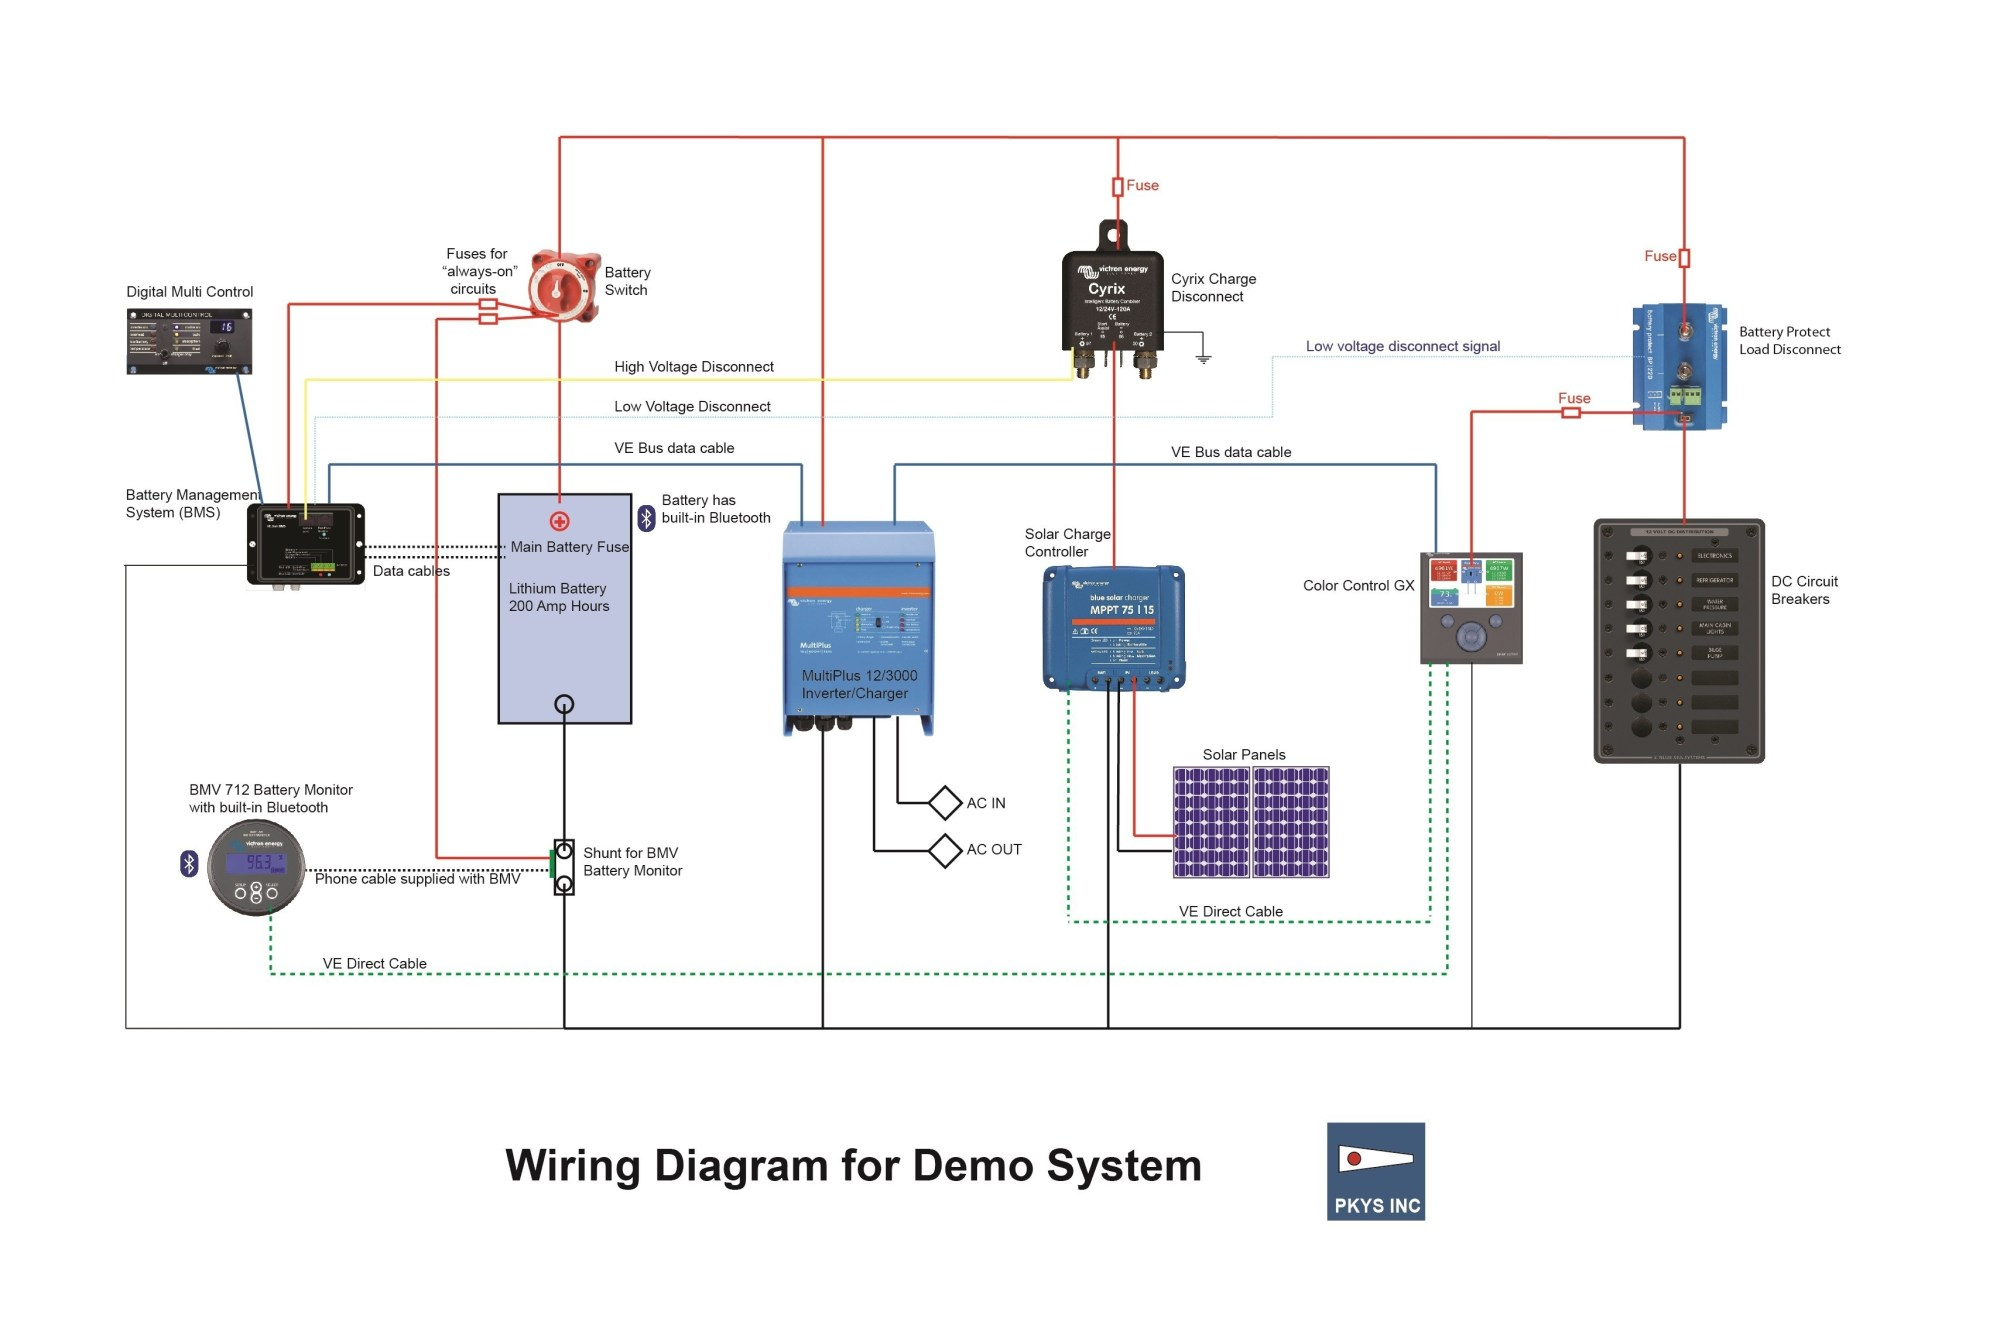 hight resolution of victron inverter wiring diagram victron inverter wiring diagram fresh victron inverter wiring diagram fresh victron